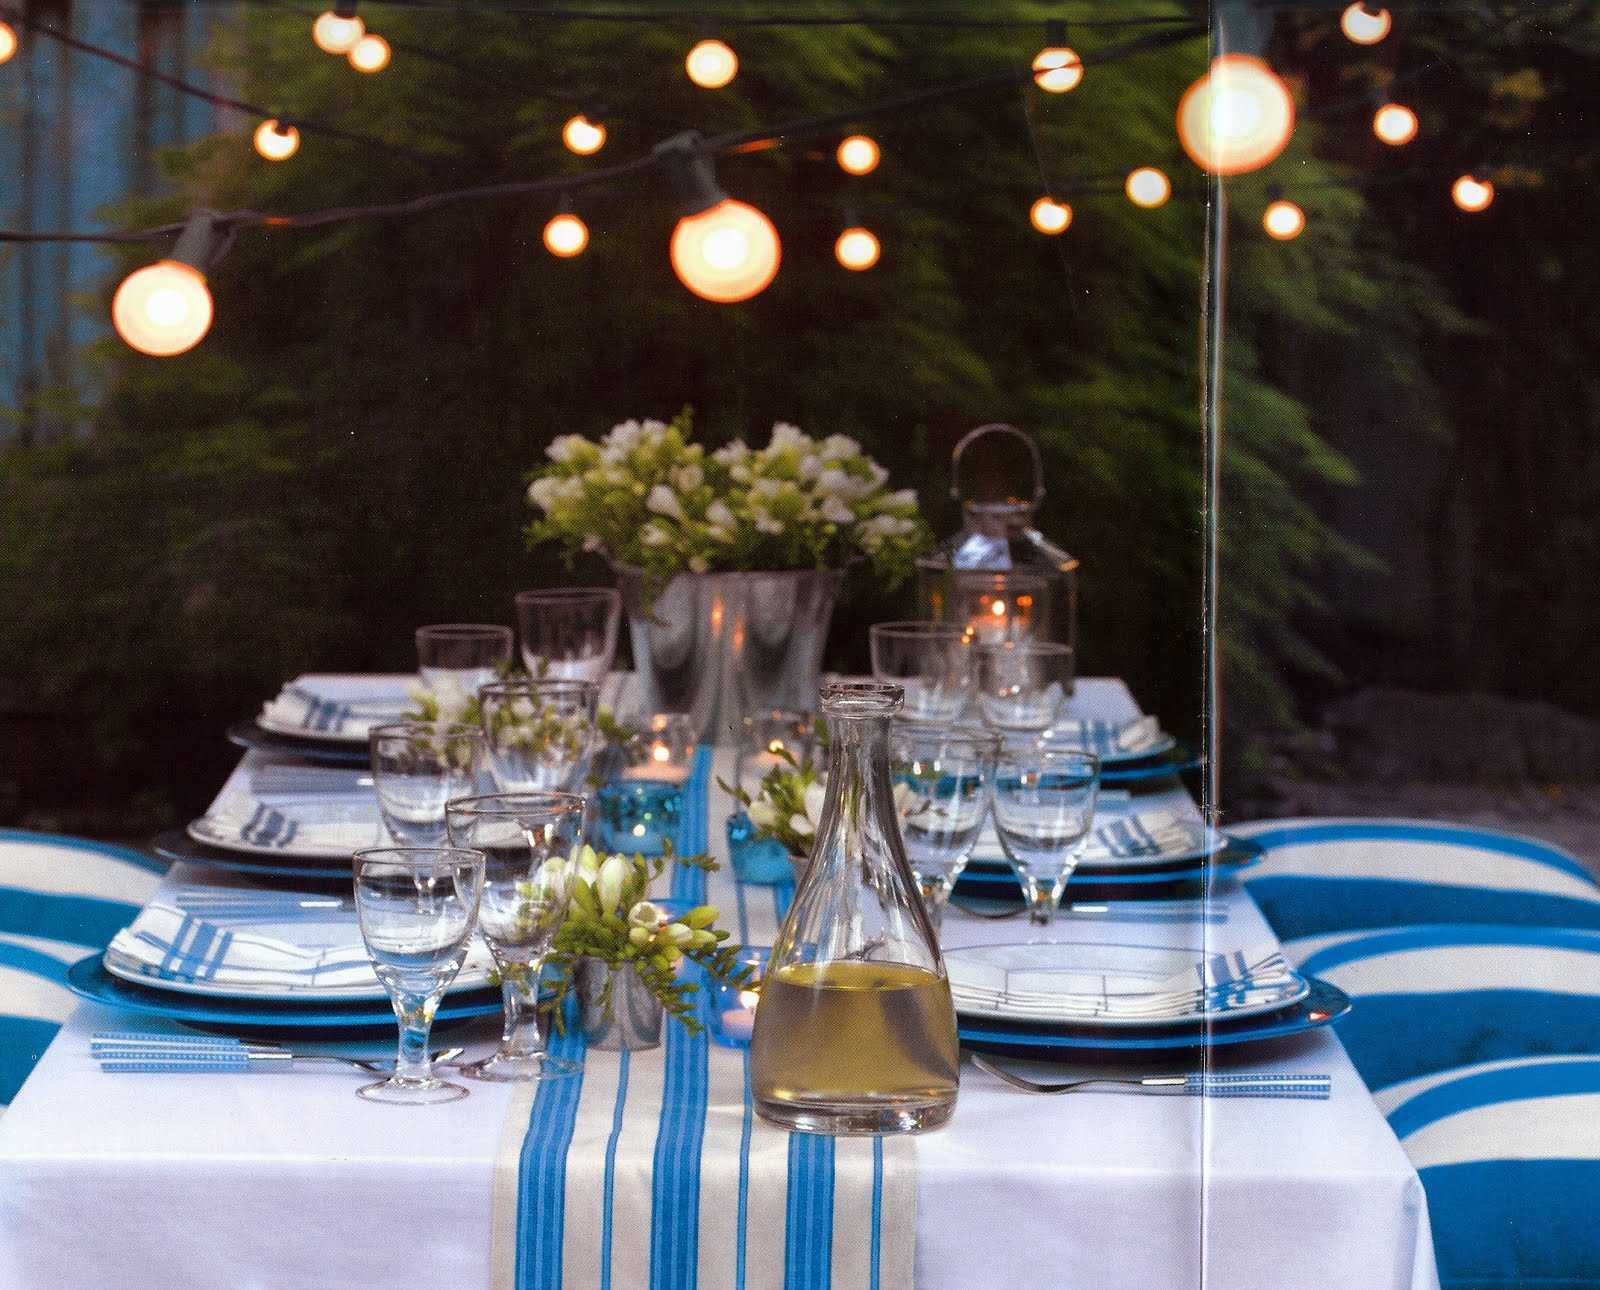 Dinner Table Lighting Ideas 7 Quick Ideas For Outdoor Decorating Guest Post